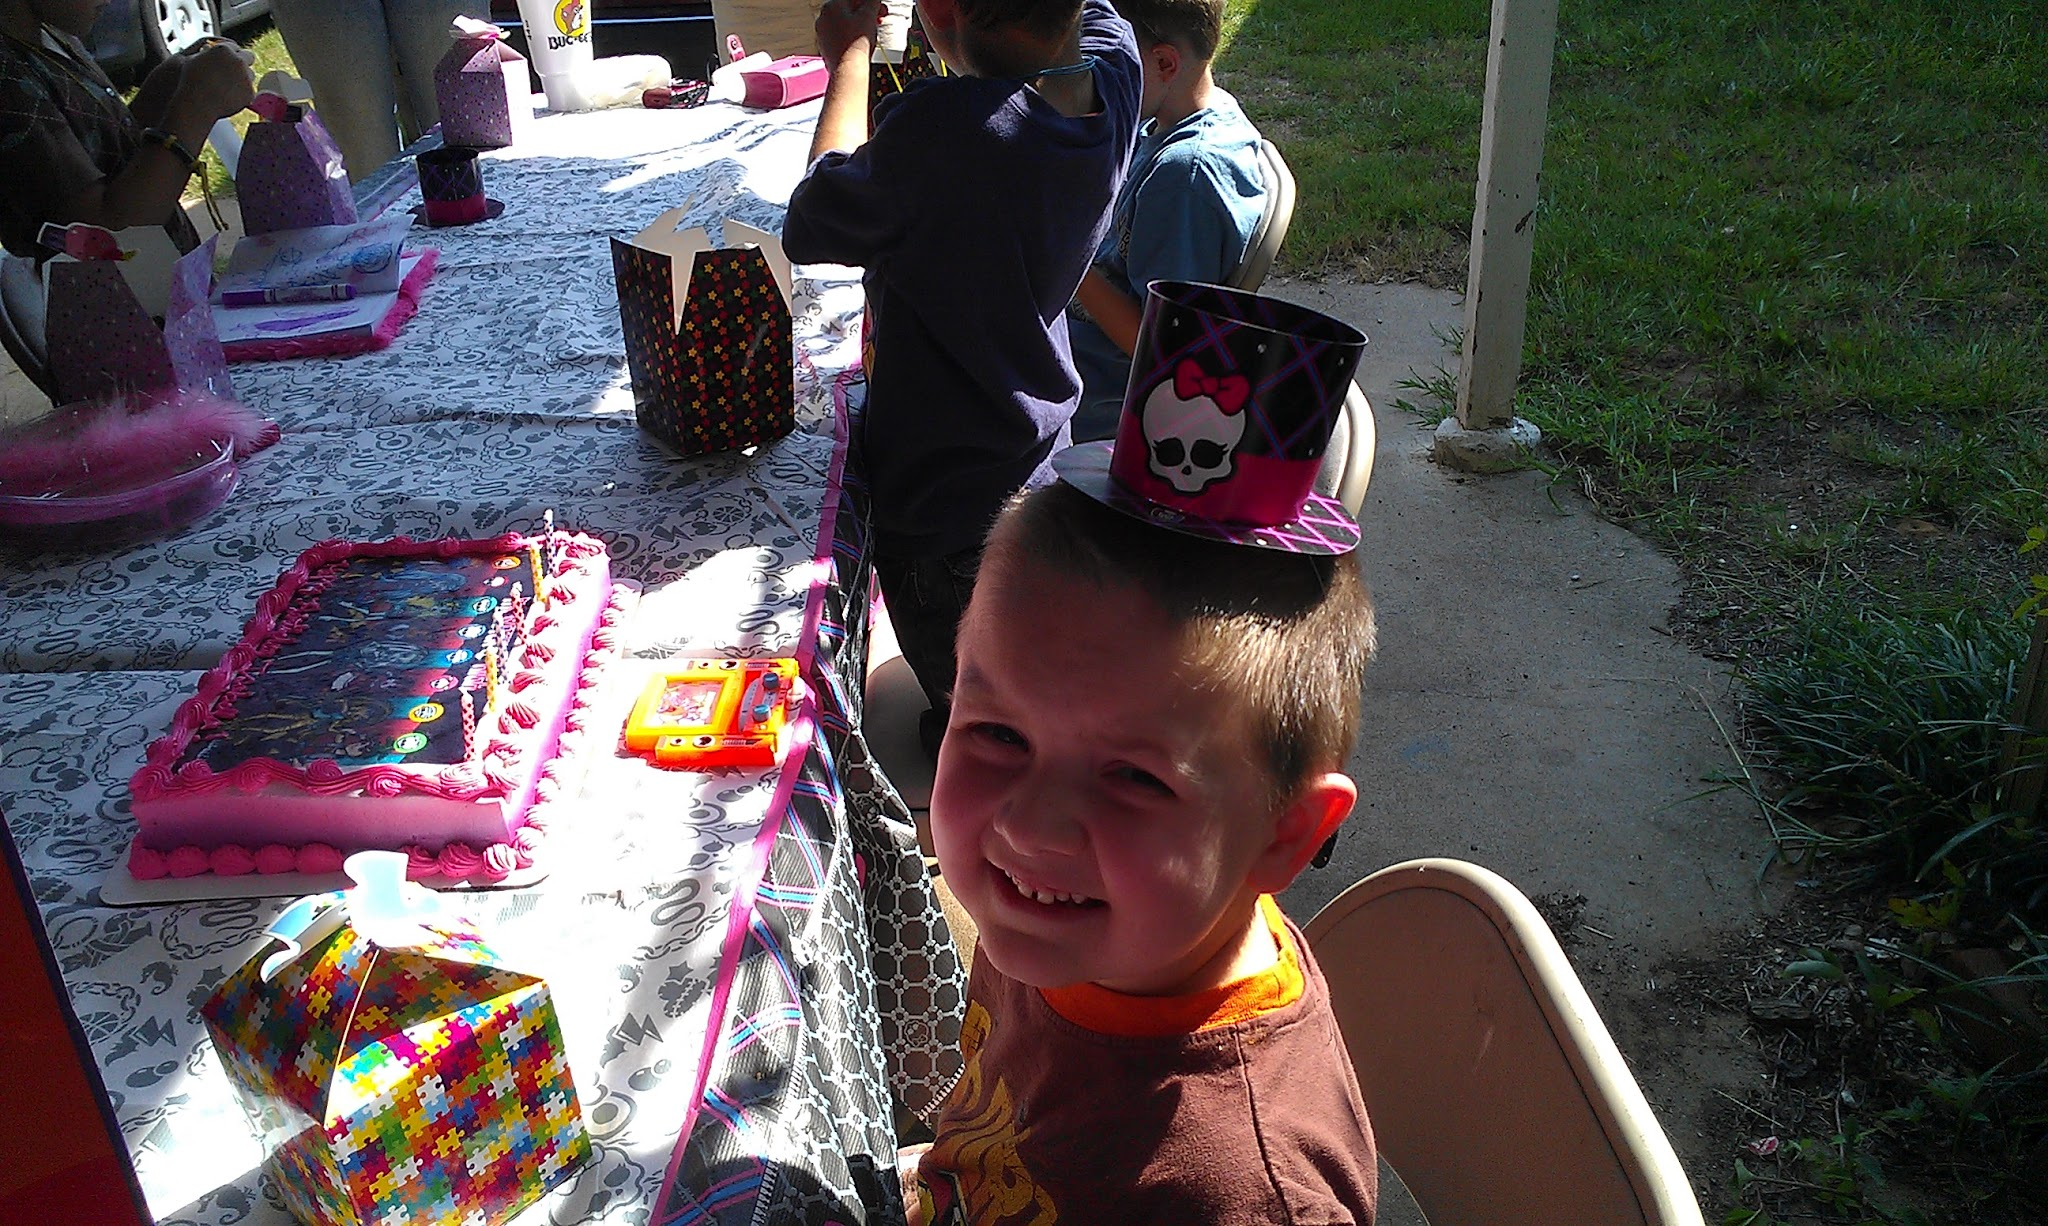 Photo: Saturday morning, The Boy and I had a birthday party to attend. The theme of the party was Monster High and I had never heard of it before. He thought the party hats were fun.